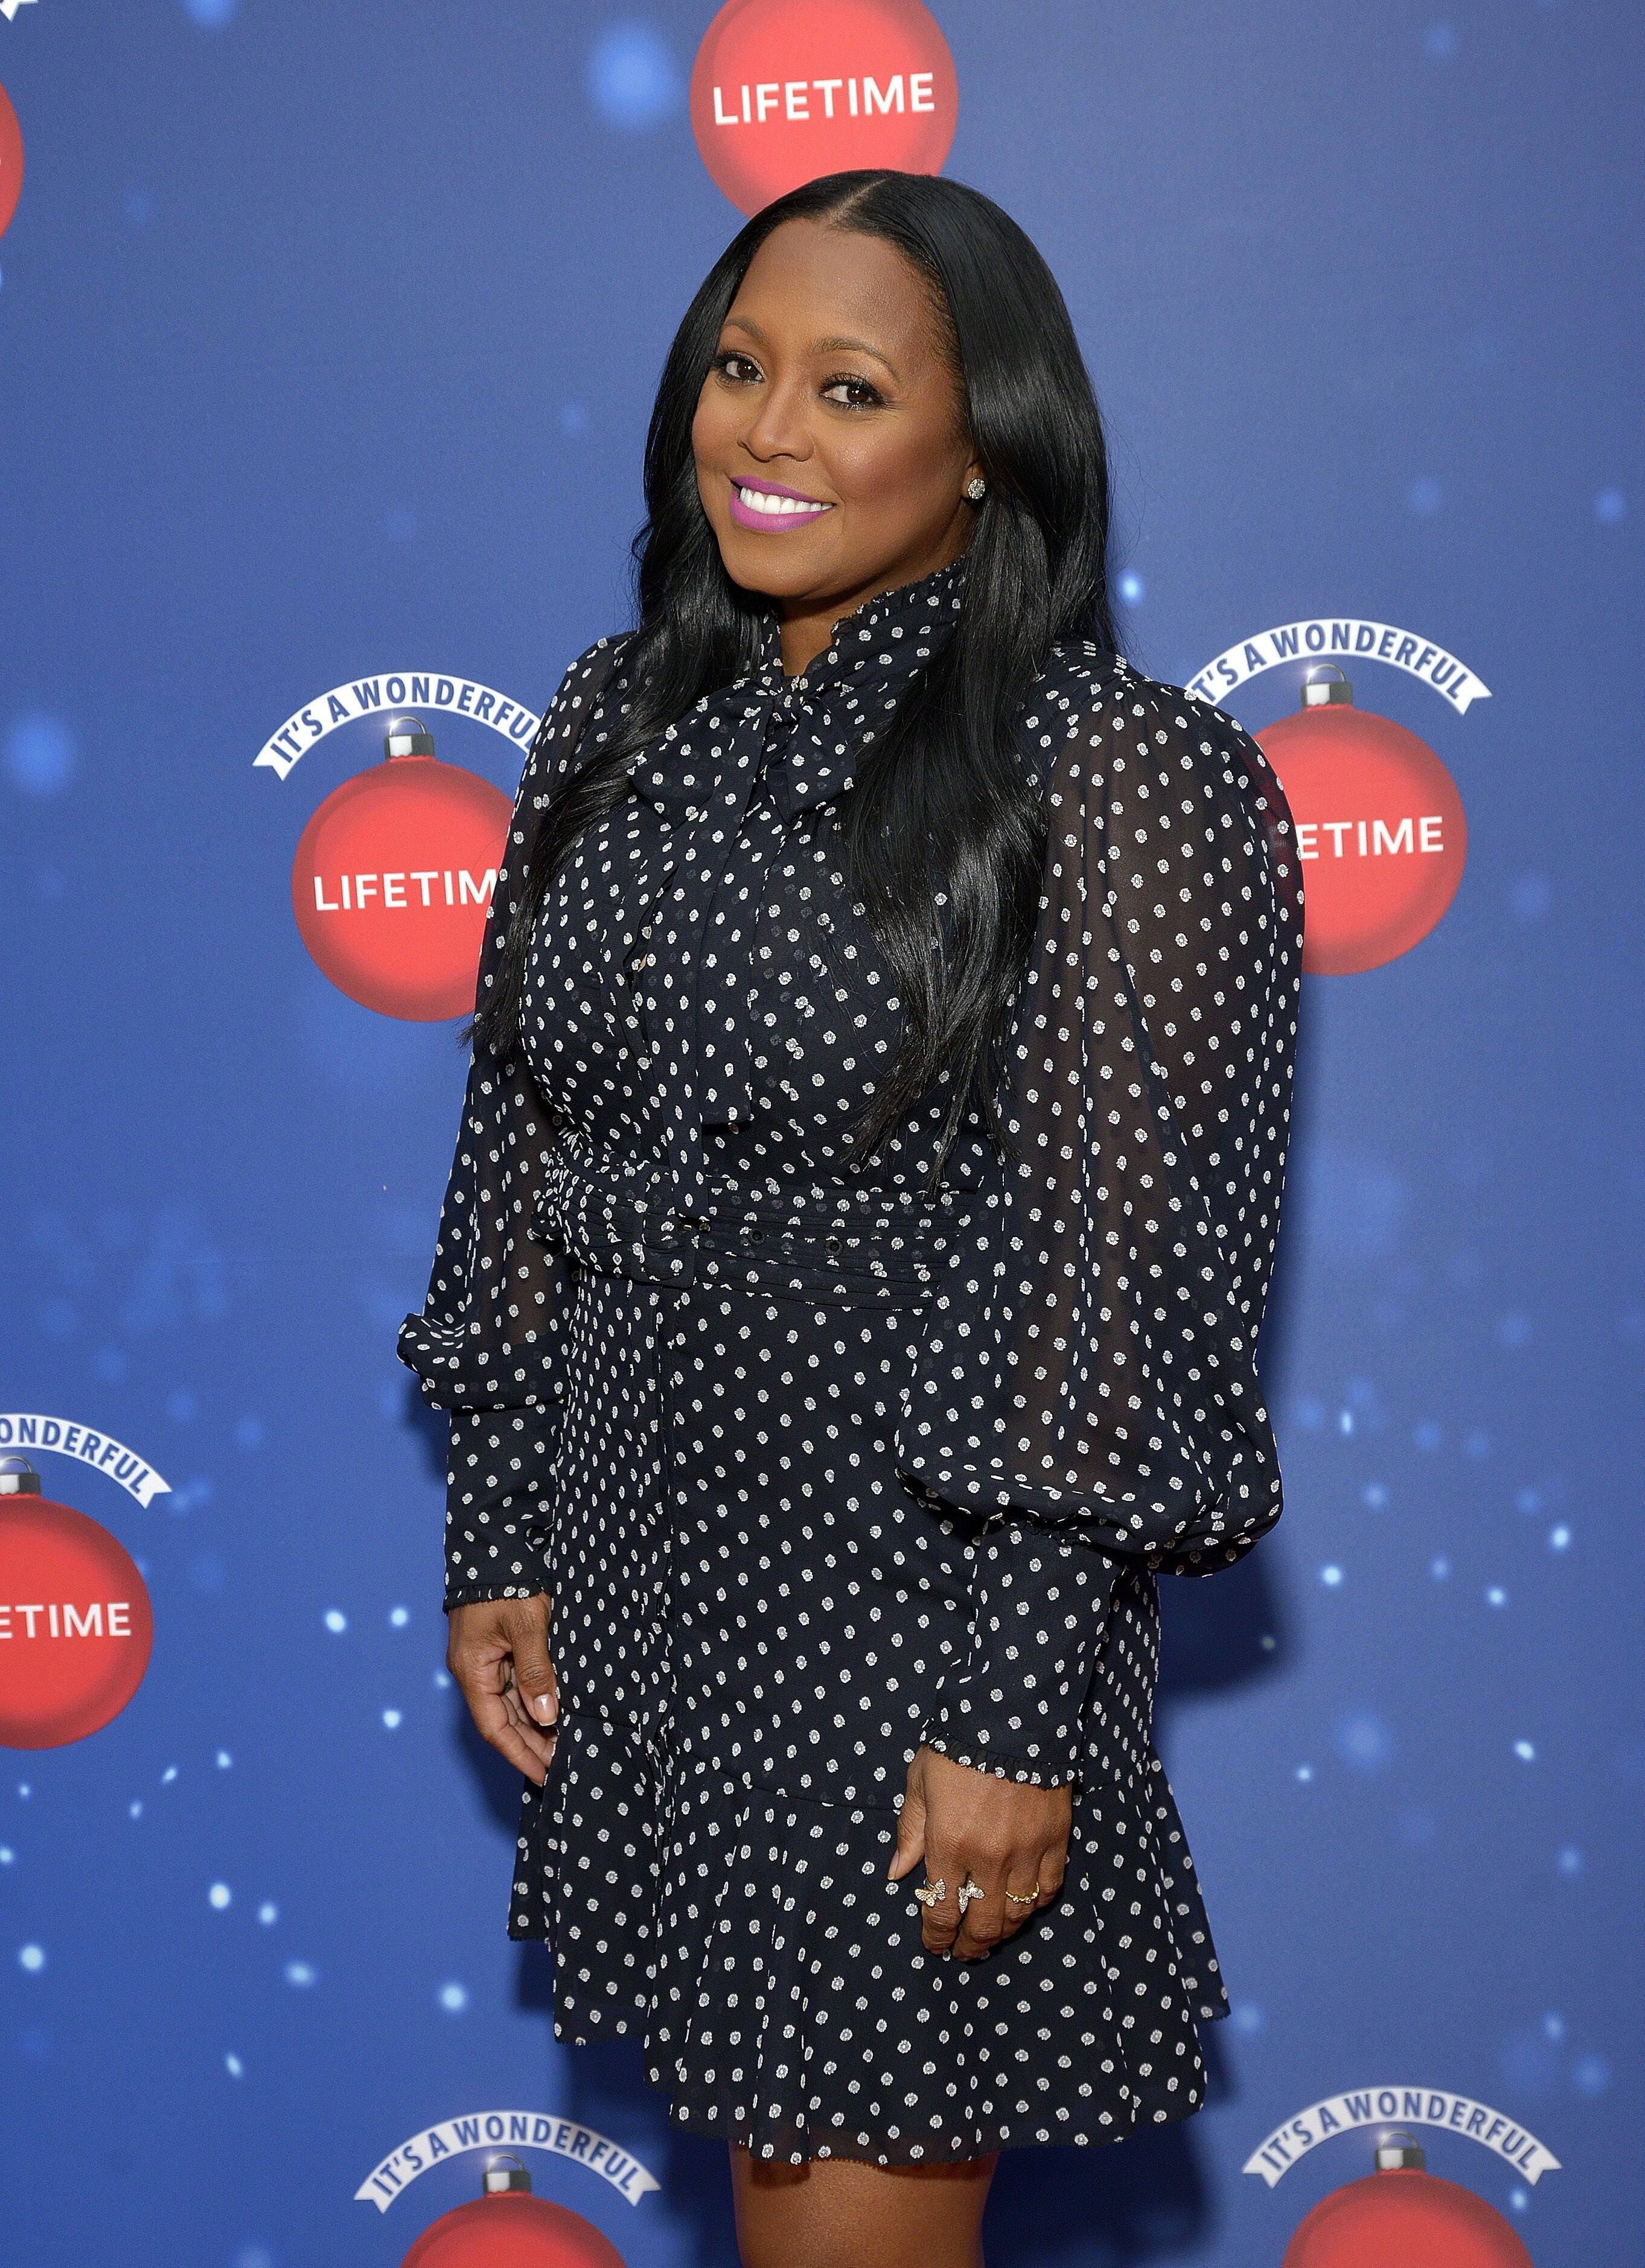 Keshia Knight Pulliam attends a Lifetime Christmas Event | Source: Getty Images/GlobalImagesUkraine